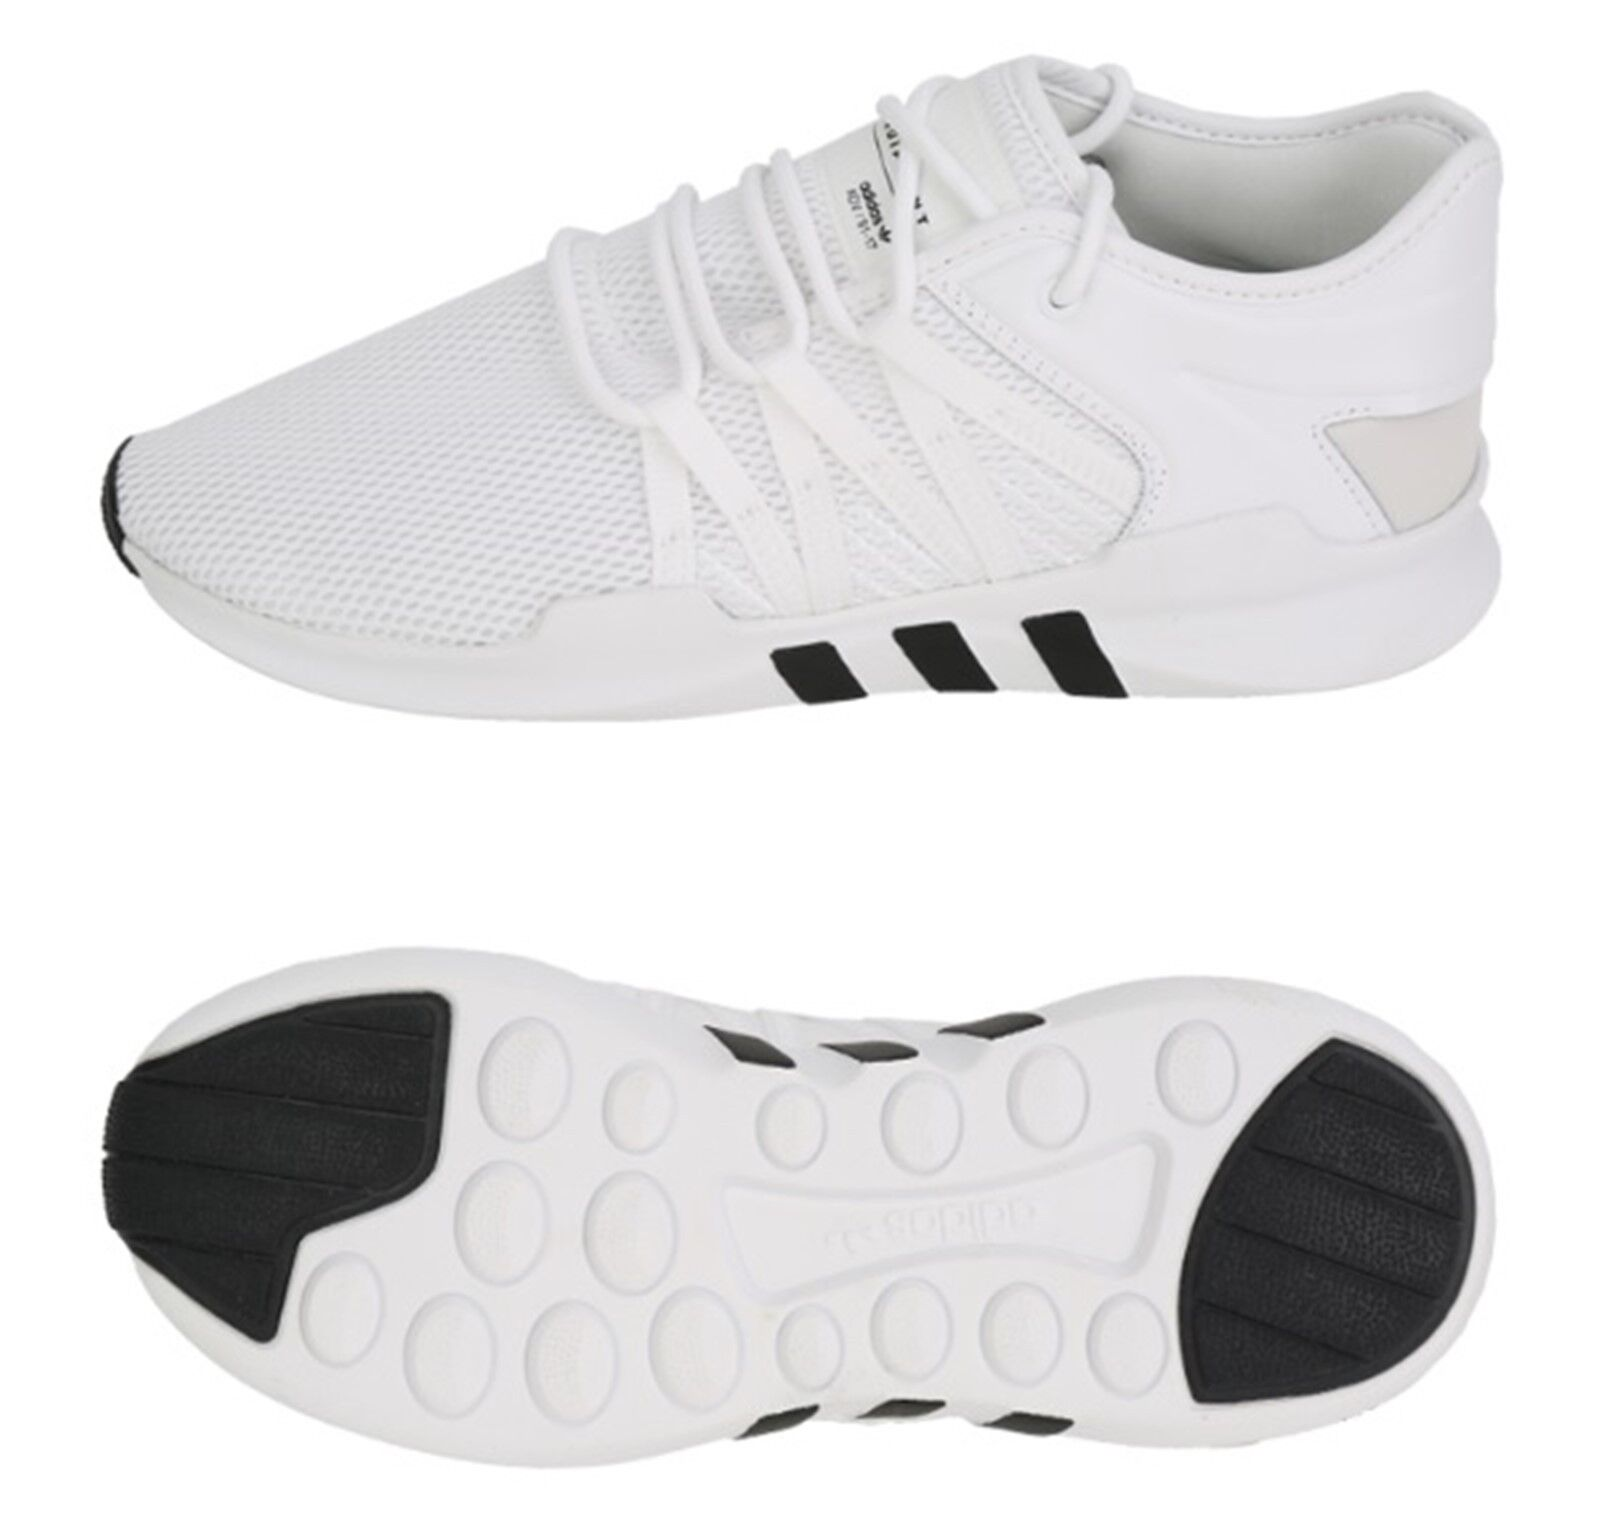 Adidas Women Originals EQT Racing shoes Running White Casual  Sneakers CQ2160  most preferential